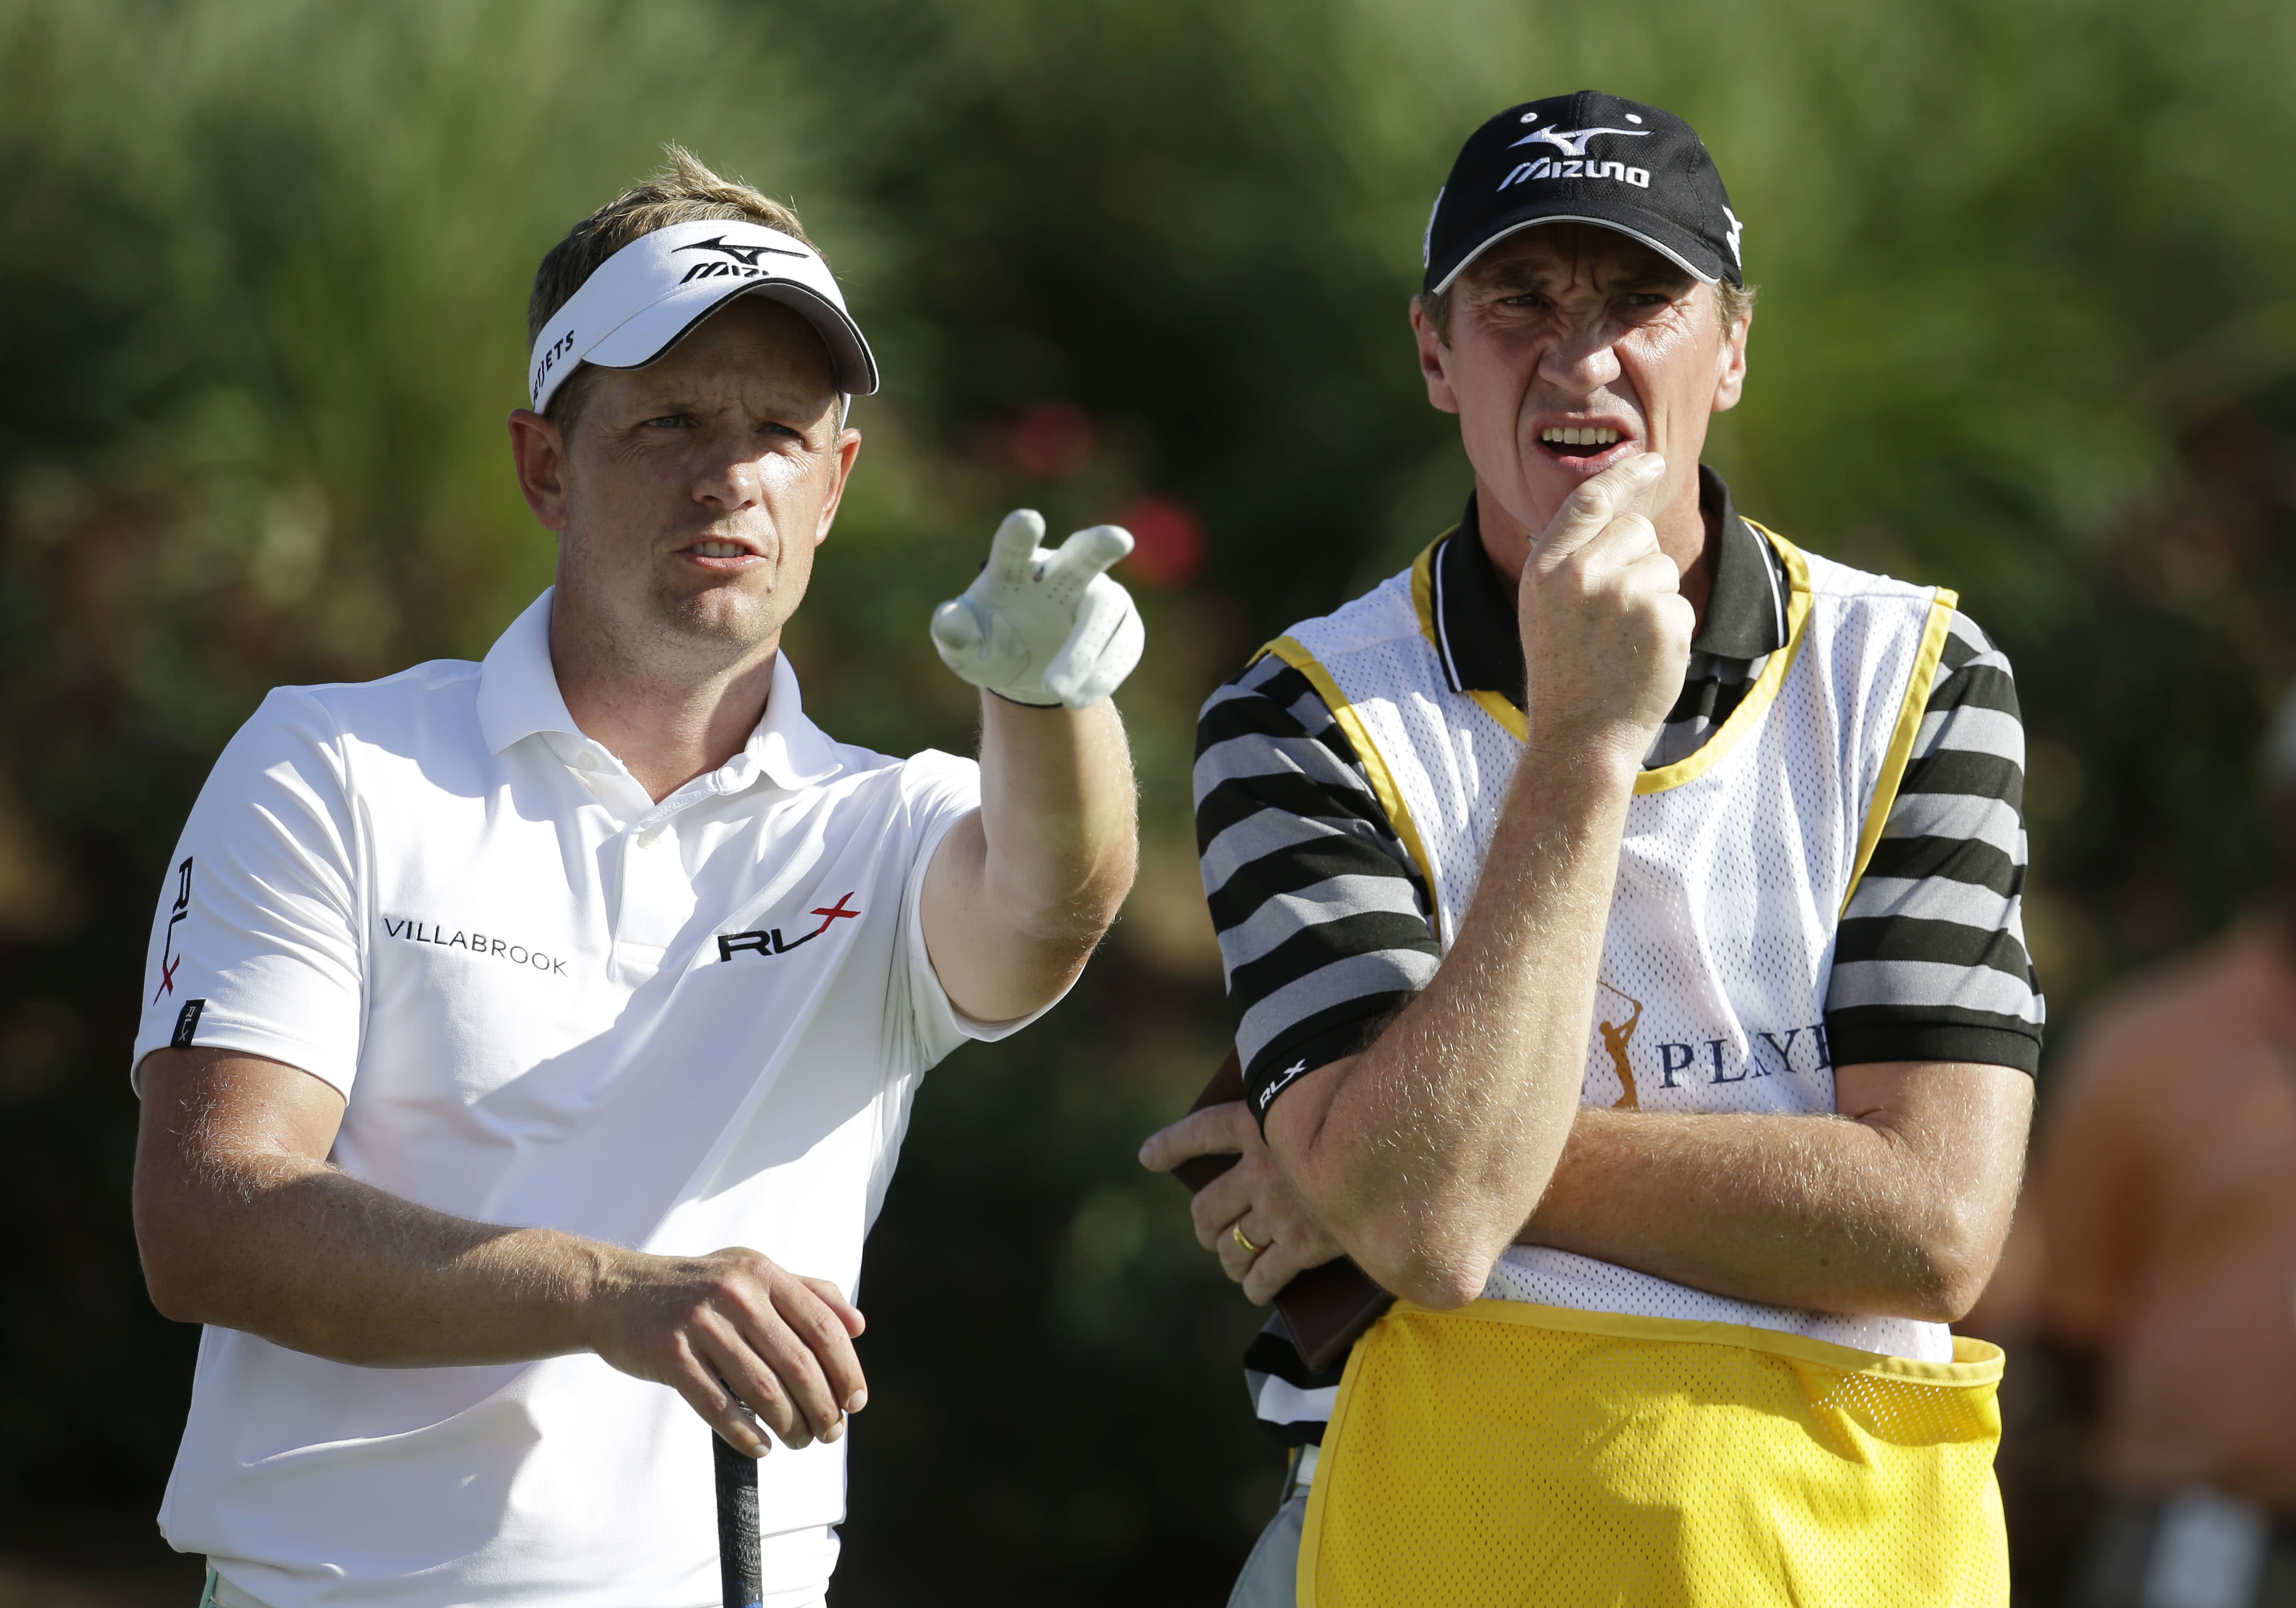 Luke Donald needs a new caddie after his old one fired him